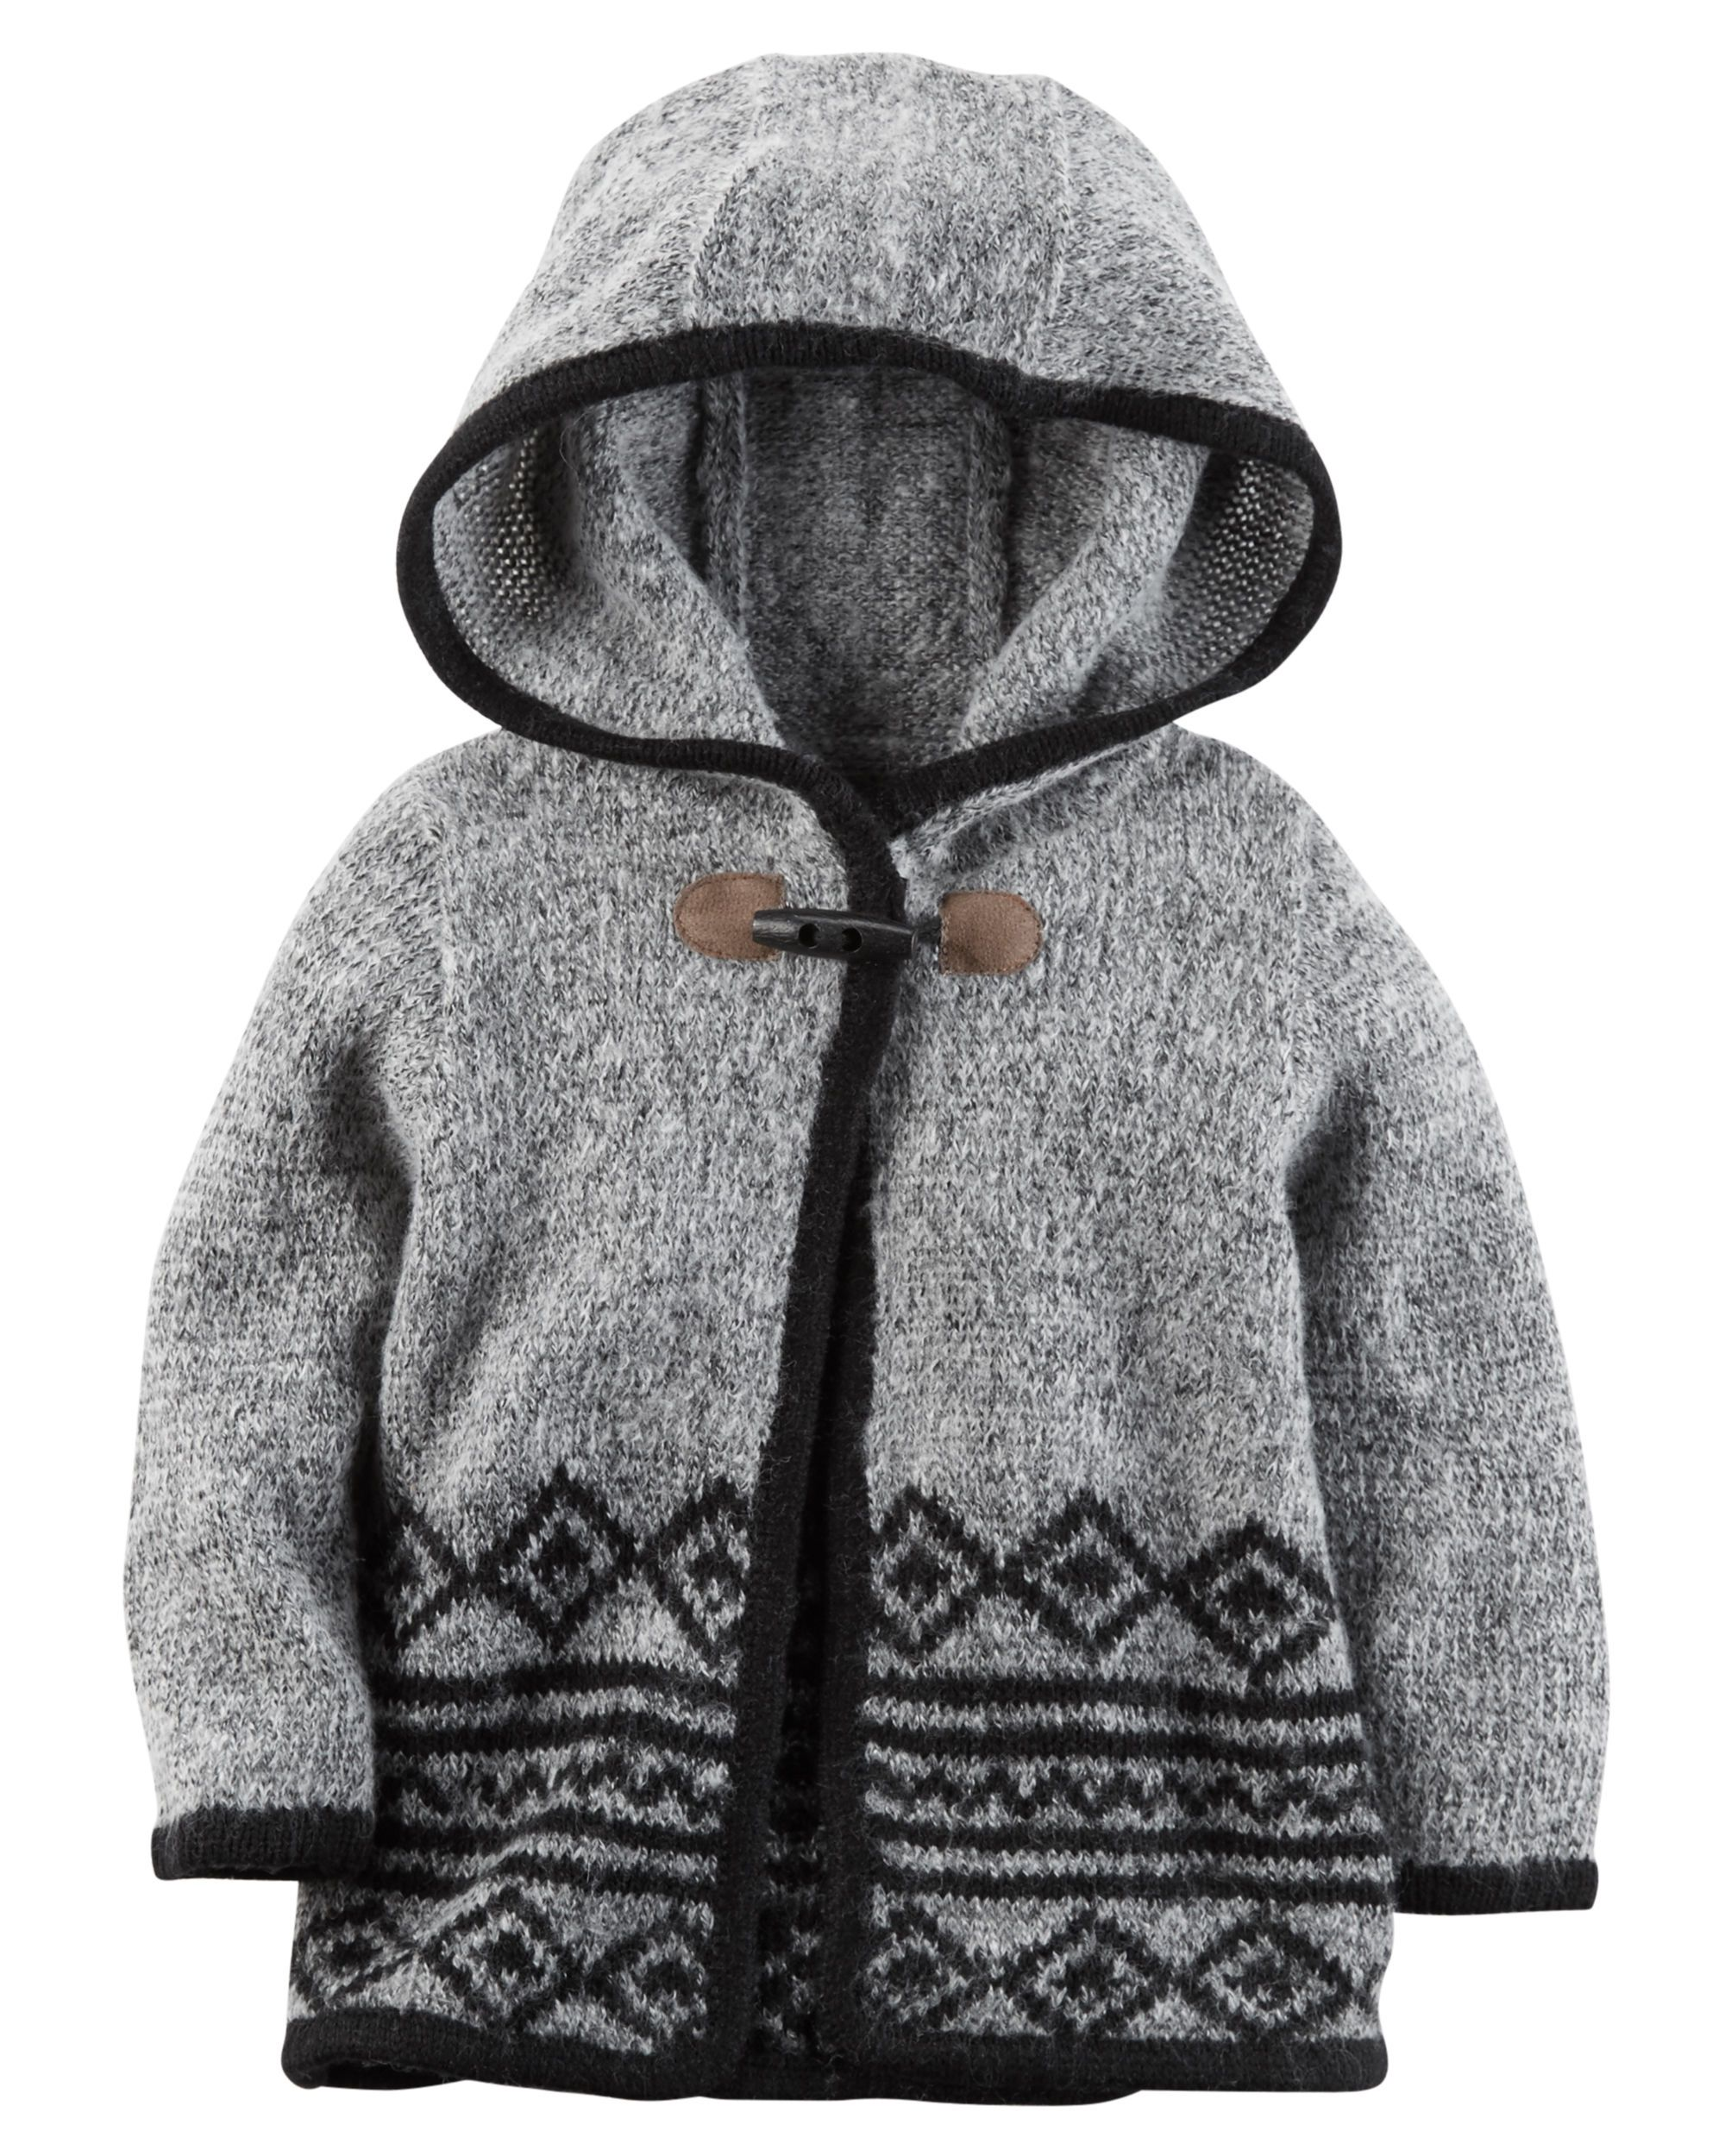 56cc8aeb0 Baby Girl Hooded Sweater